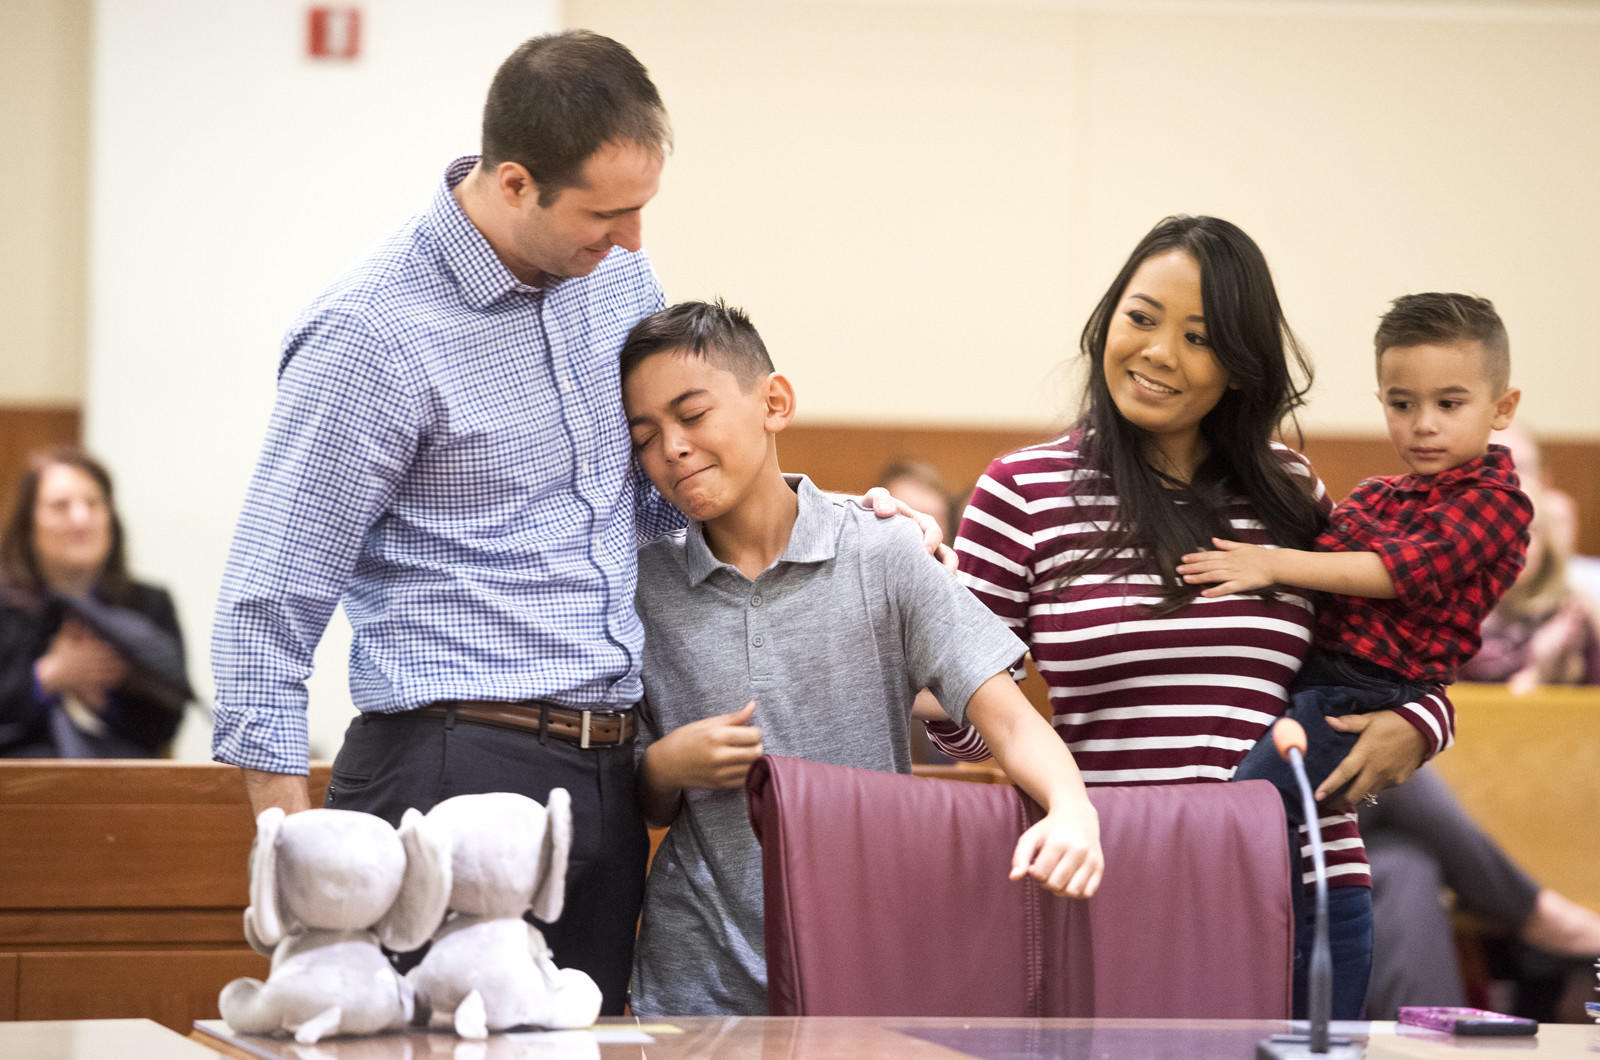 'She's a keeper:' National Adoption Day brings families together in Anne Arundel Circuit Court